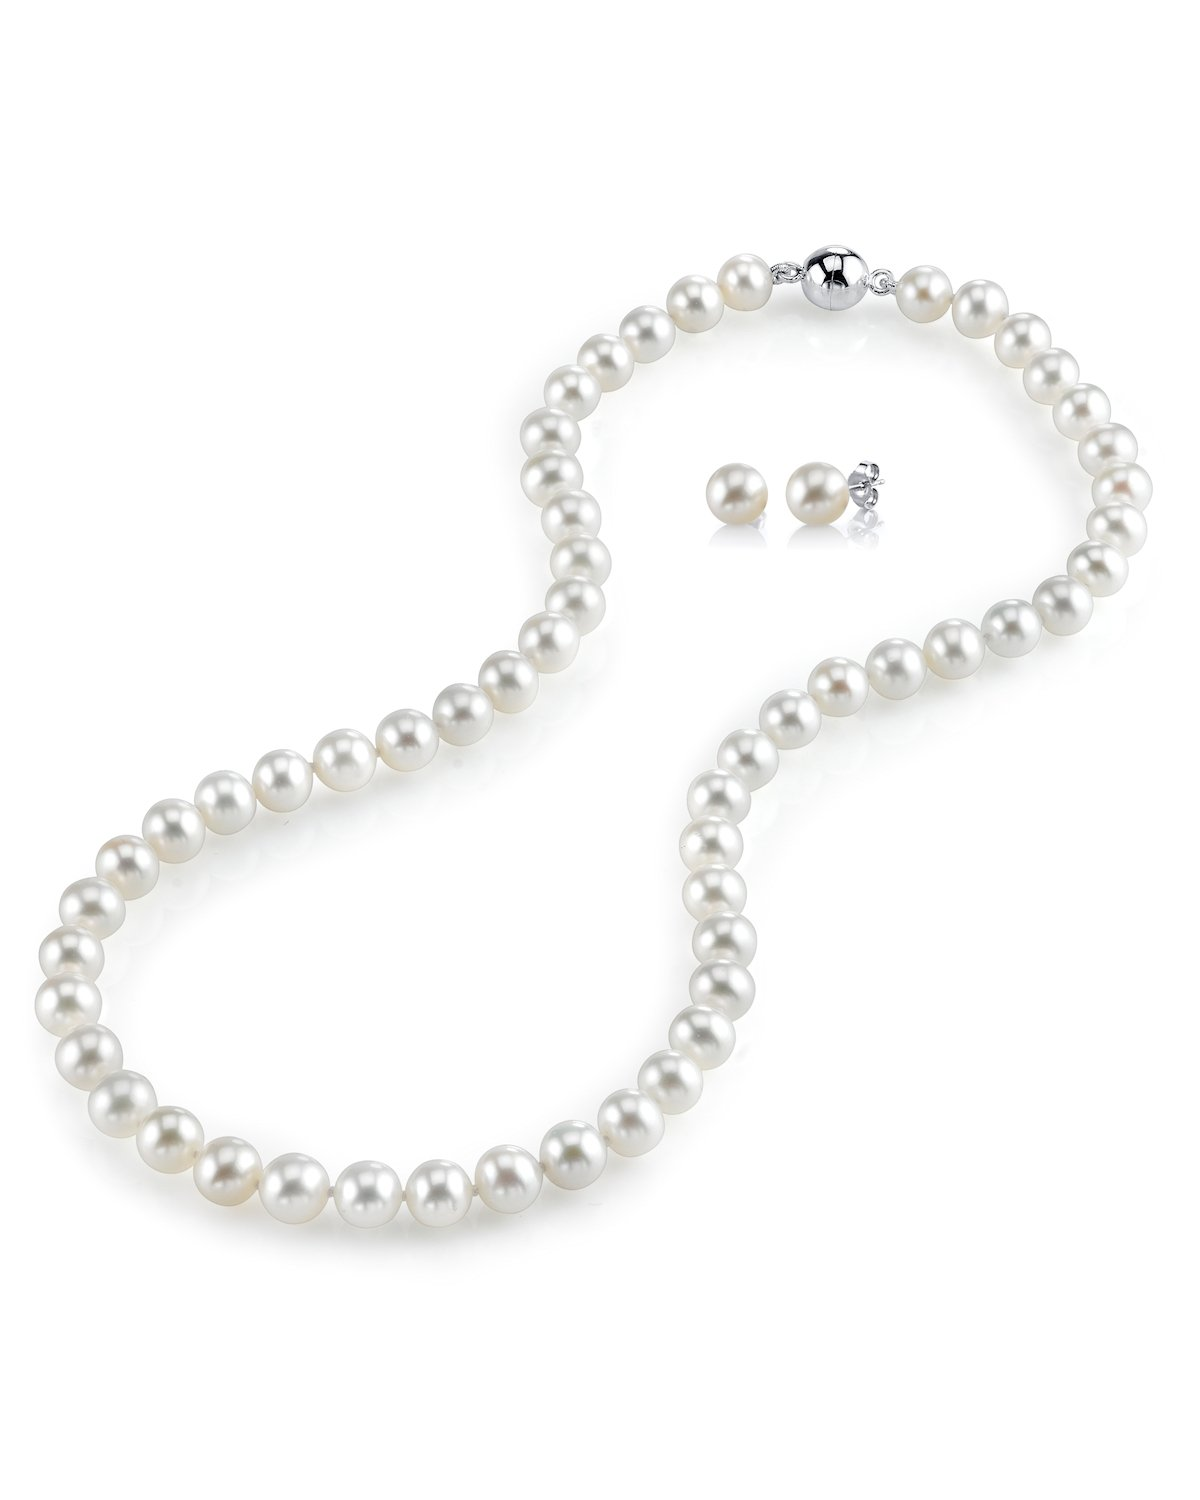 3d965a40c THE PEARL SOURCE AAA Quality 7-8mm Round White Freshwater Cultured Pearl  Necklace & Earrings